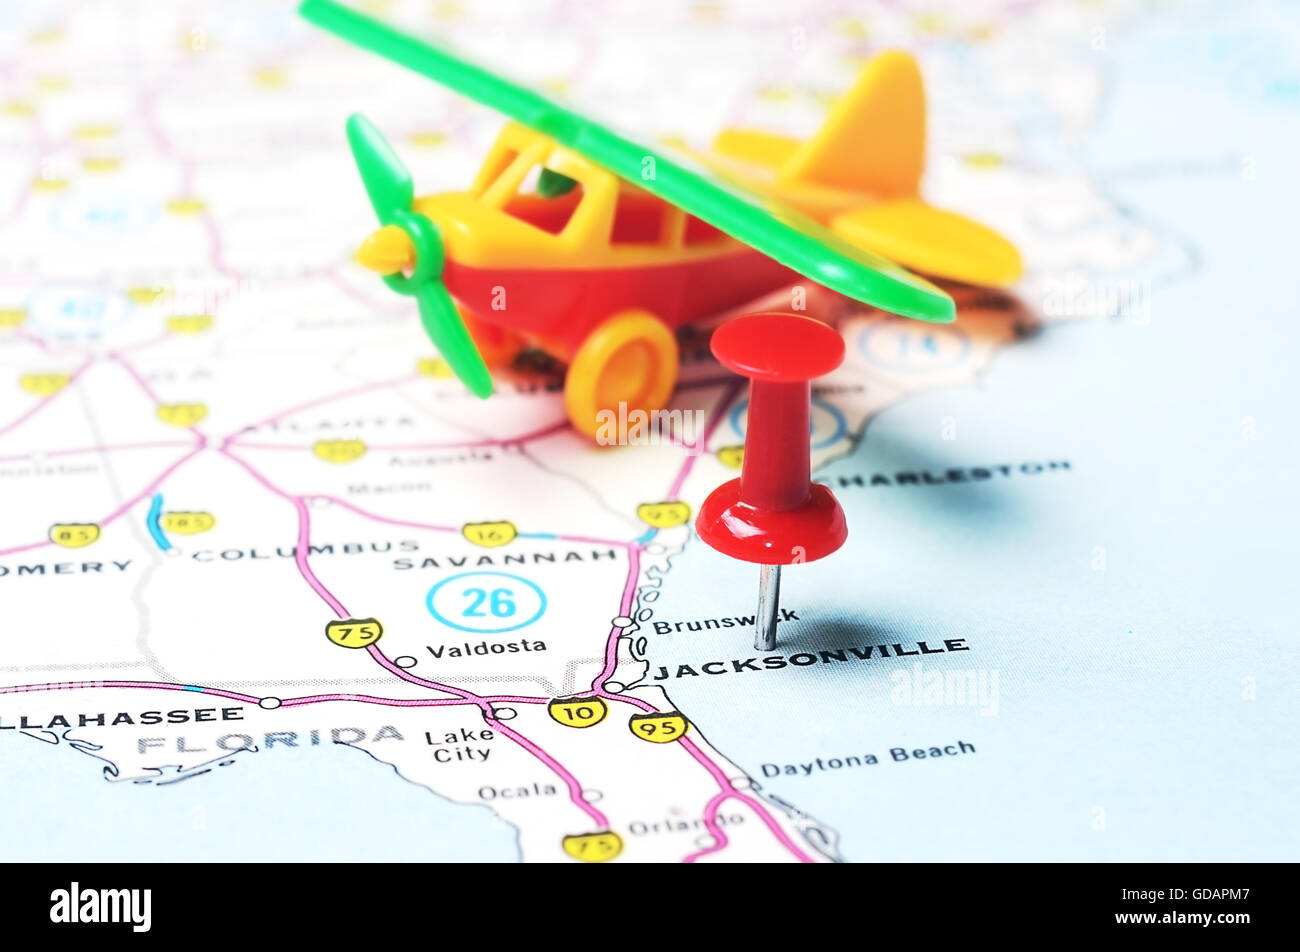 Close Up Of Jacksonville Florida Usa Map With Red Pin And Airplane Toy Travel Concept